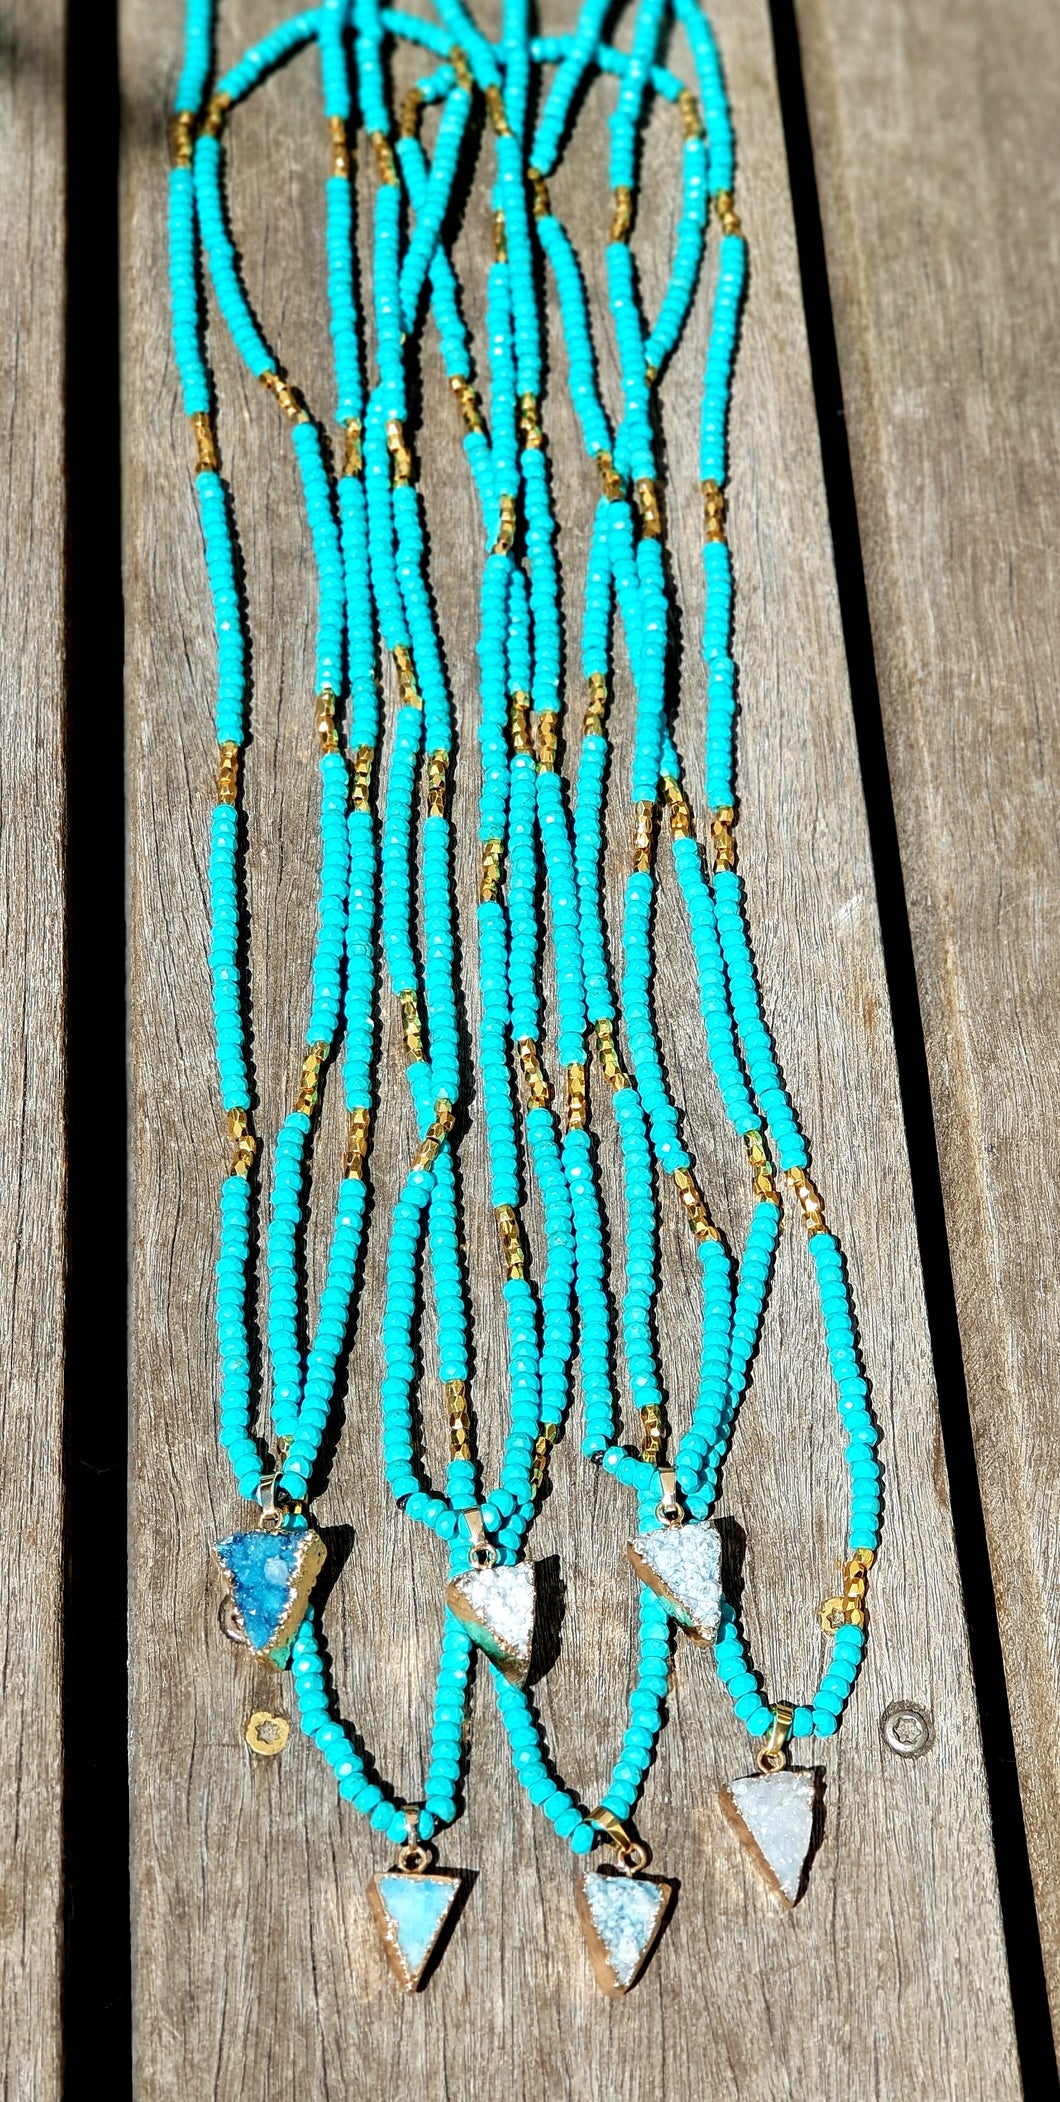 Pakaha turquoise beads necklace with a triangle agate stone - Uli Uli Jewelry